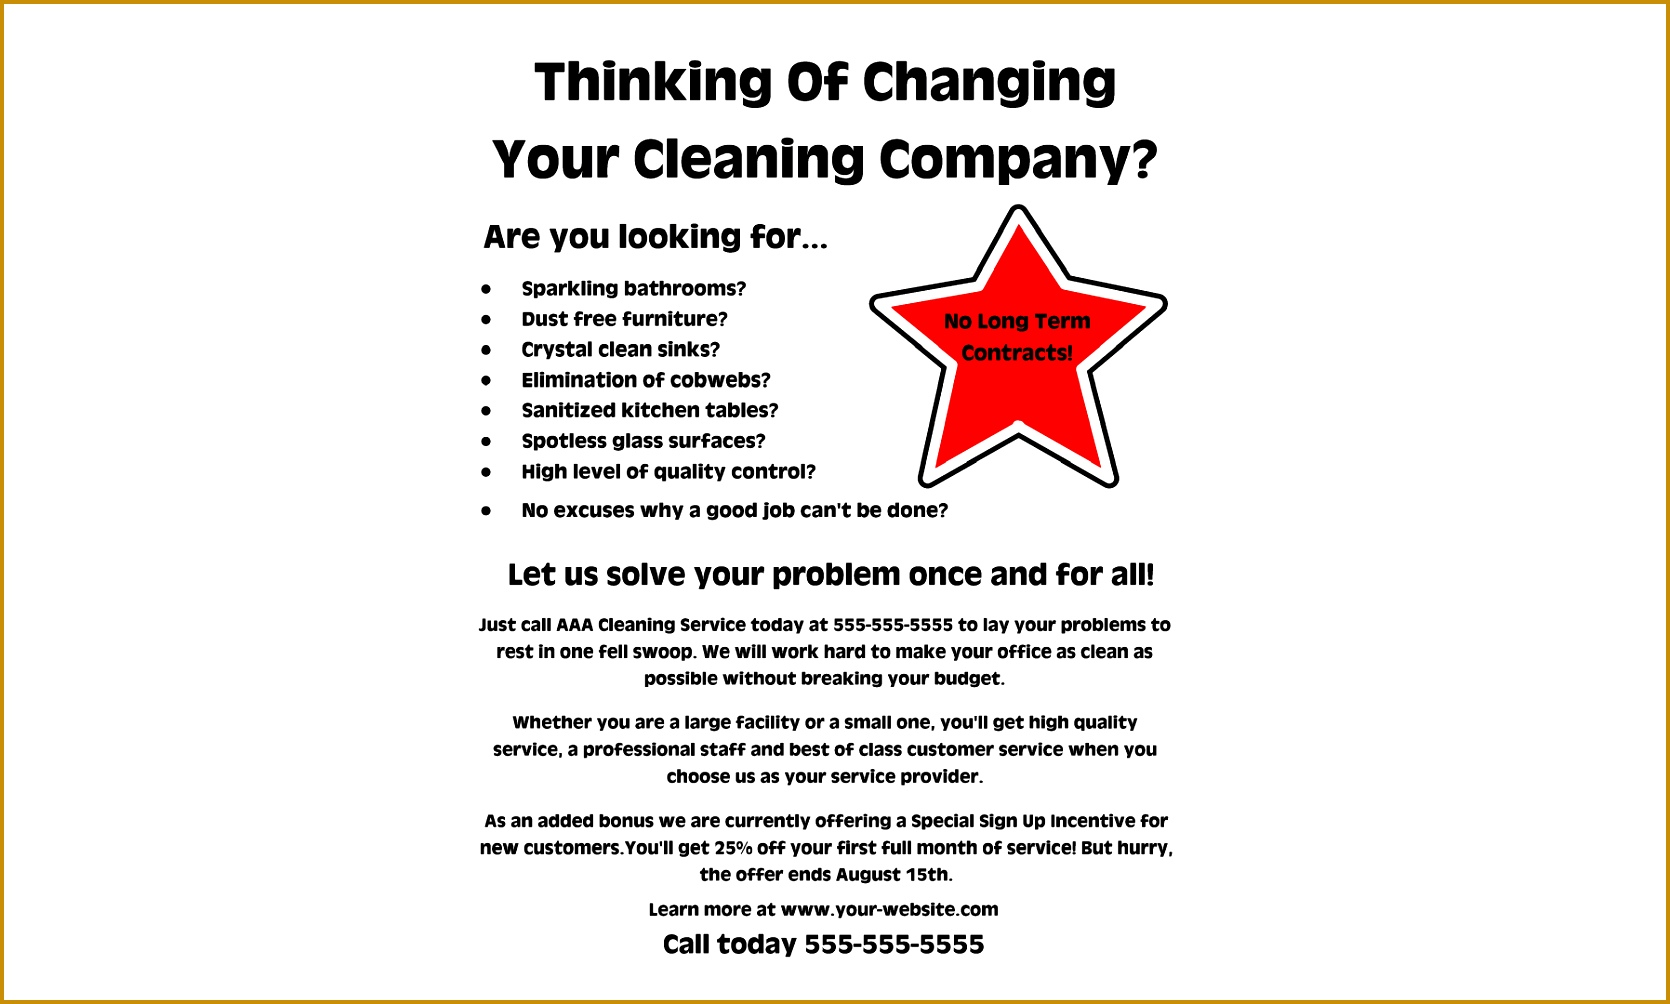 Sample Business Flyer 85844 Mercial Cleaning Business Flyers Examples and Samples